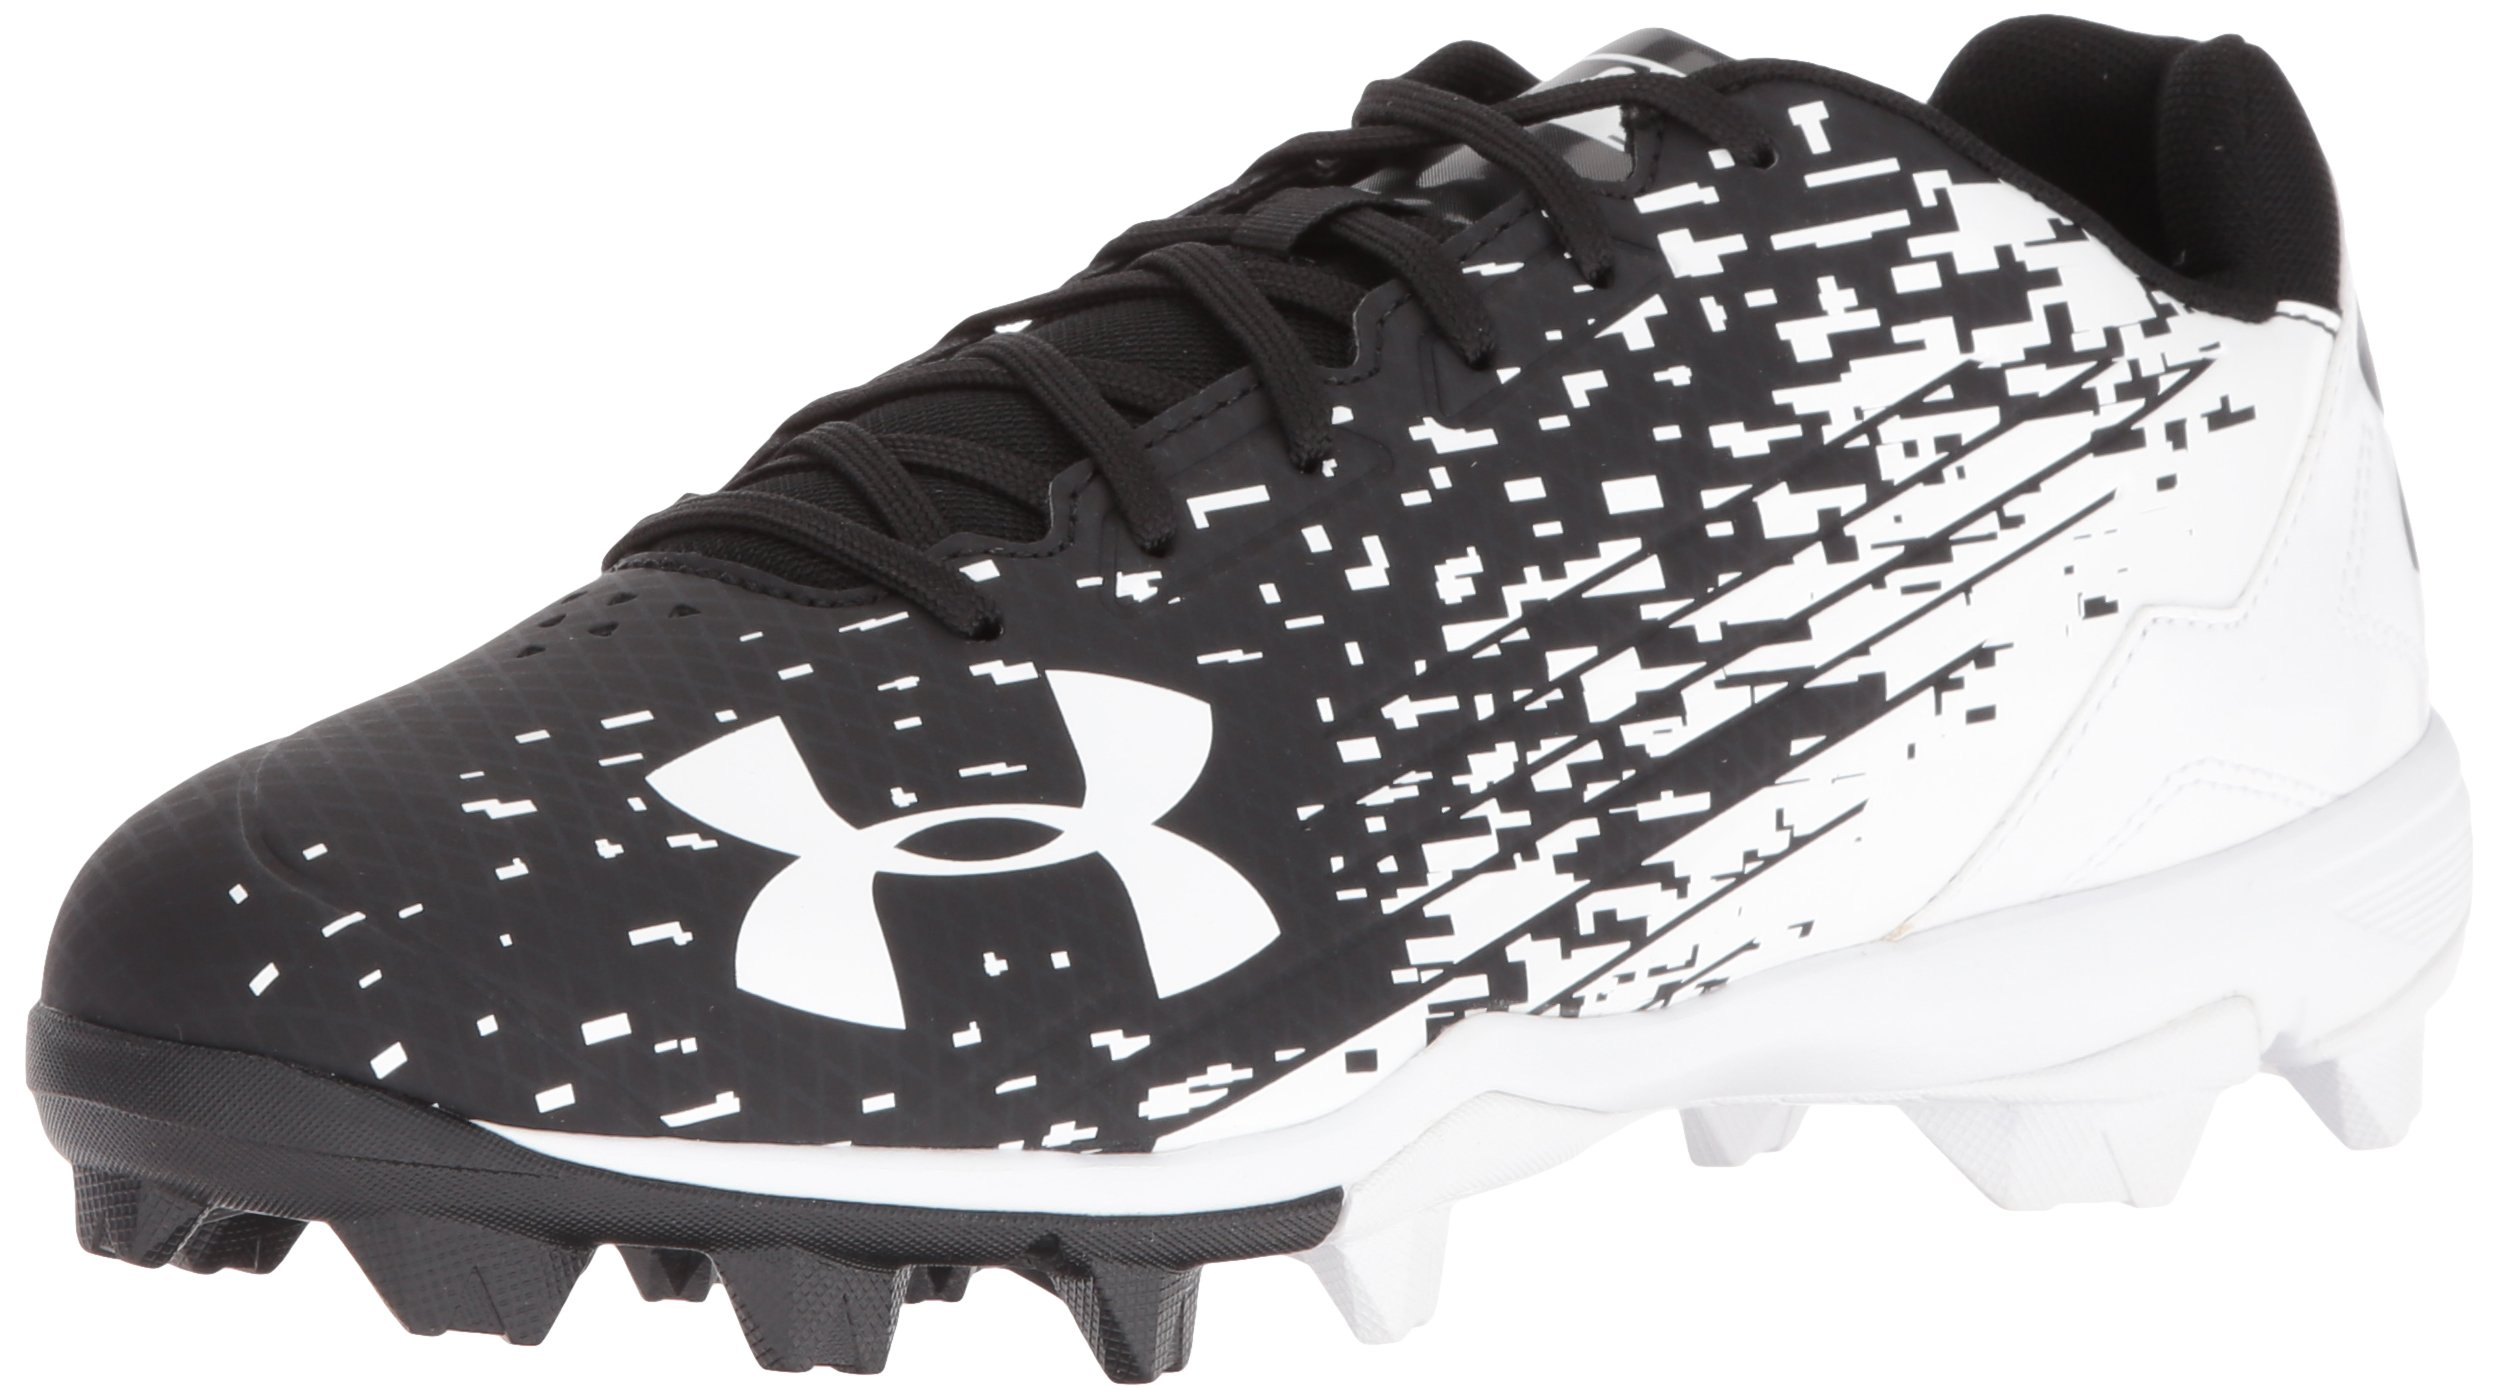 Under Armour Men's Leadoff Low RM Baseball Shoe, Black (011)/White, 12 by Under Armour